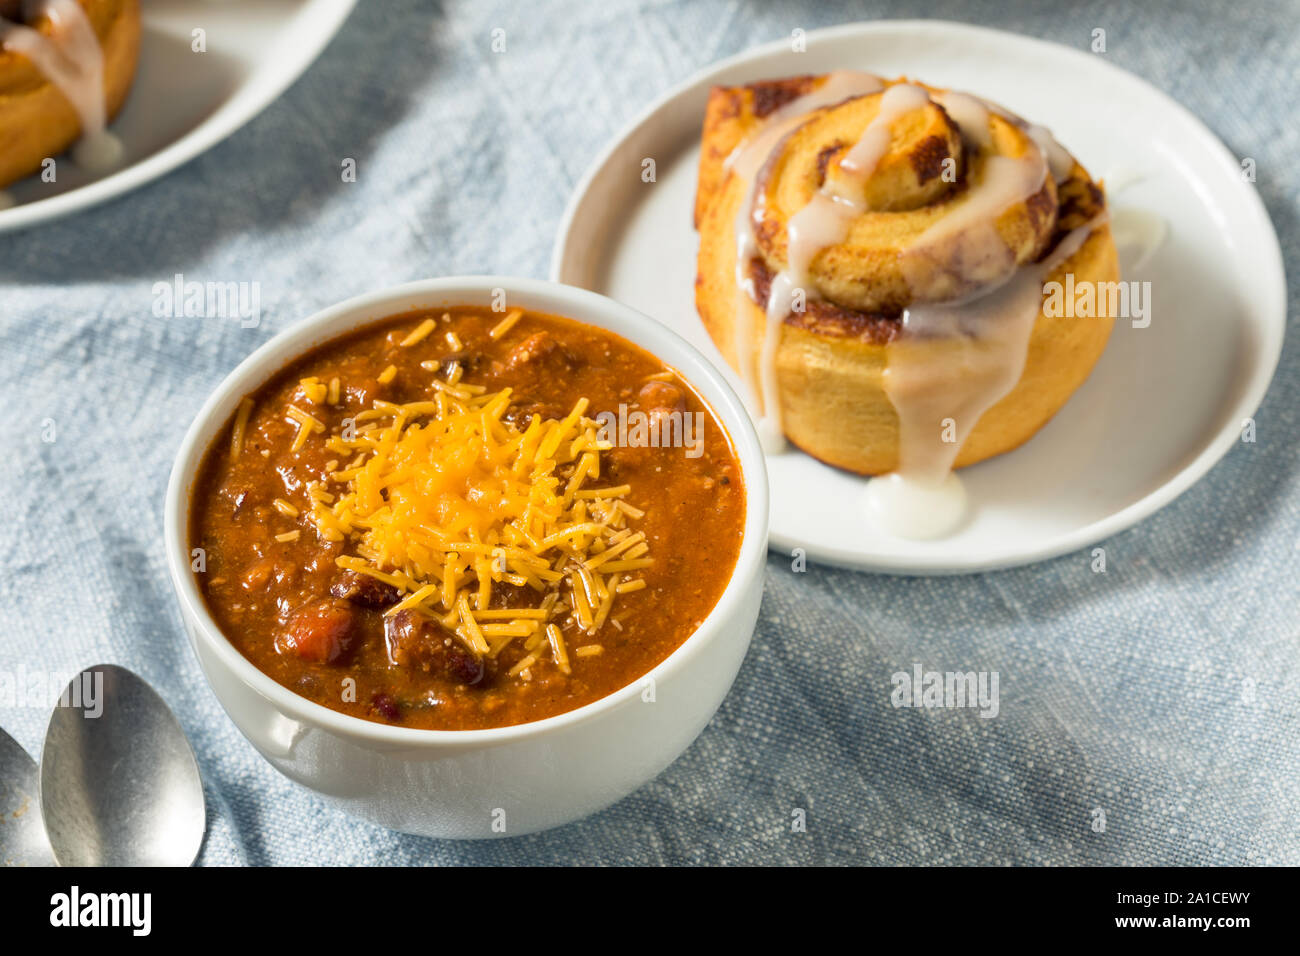 Homemade Chili Soup And Cinnamon Roll For Lunch Stock Photo Alamy